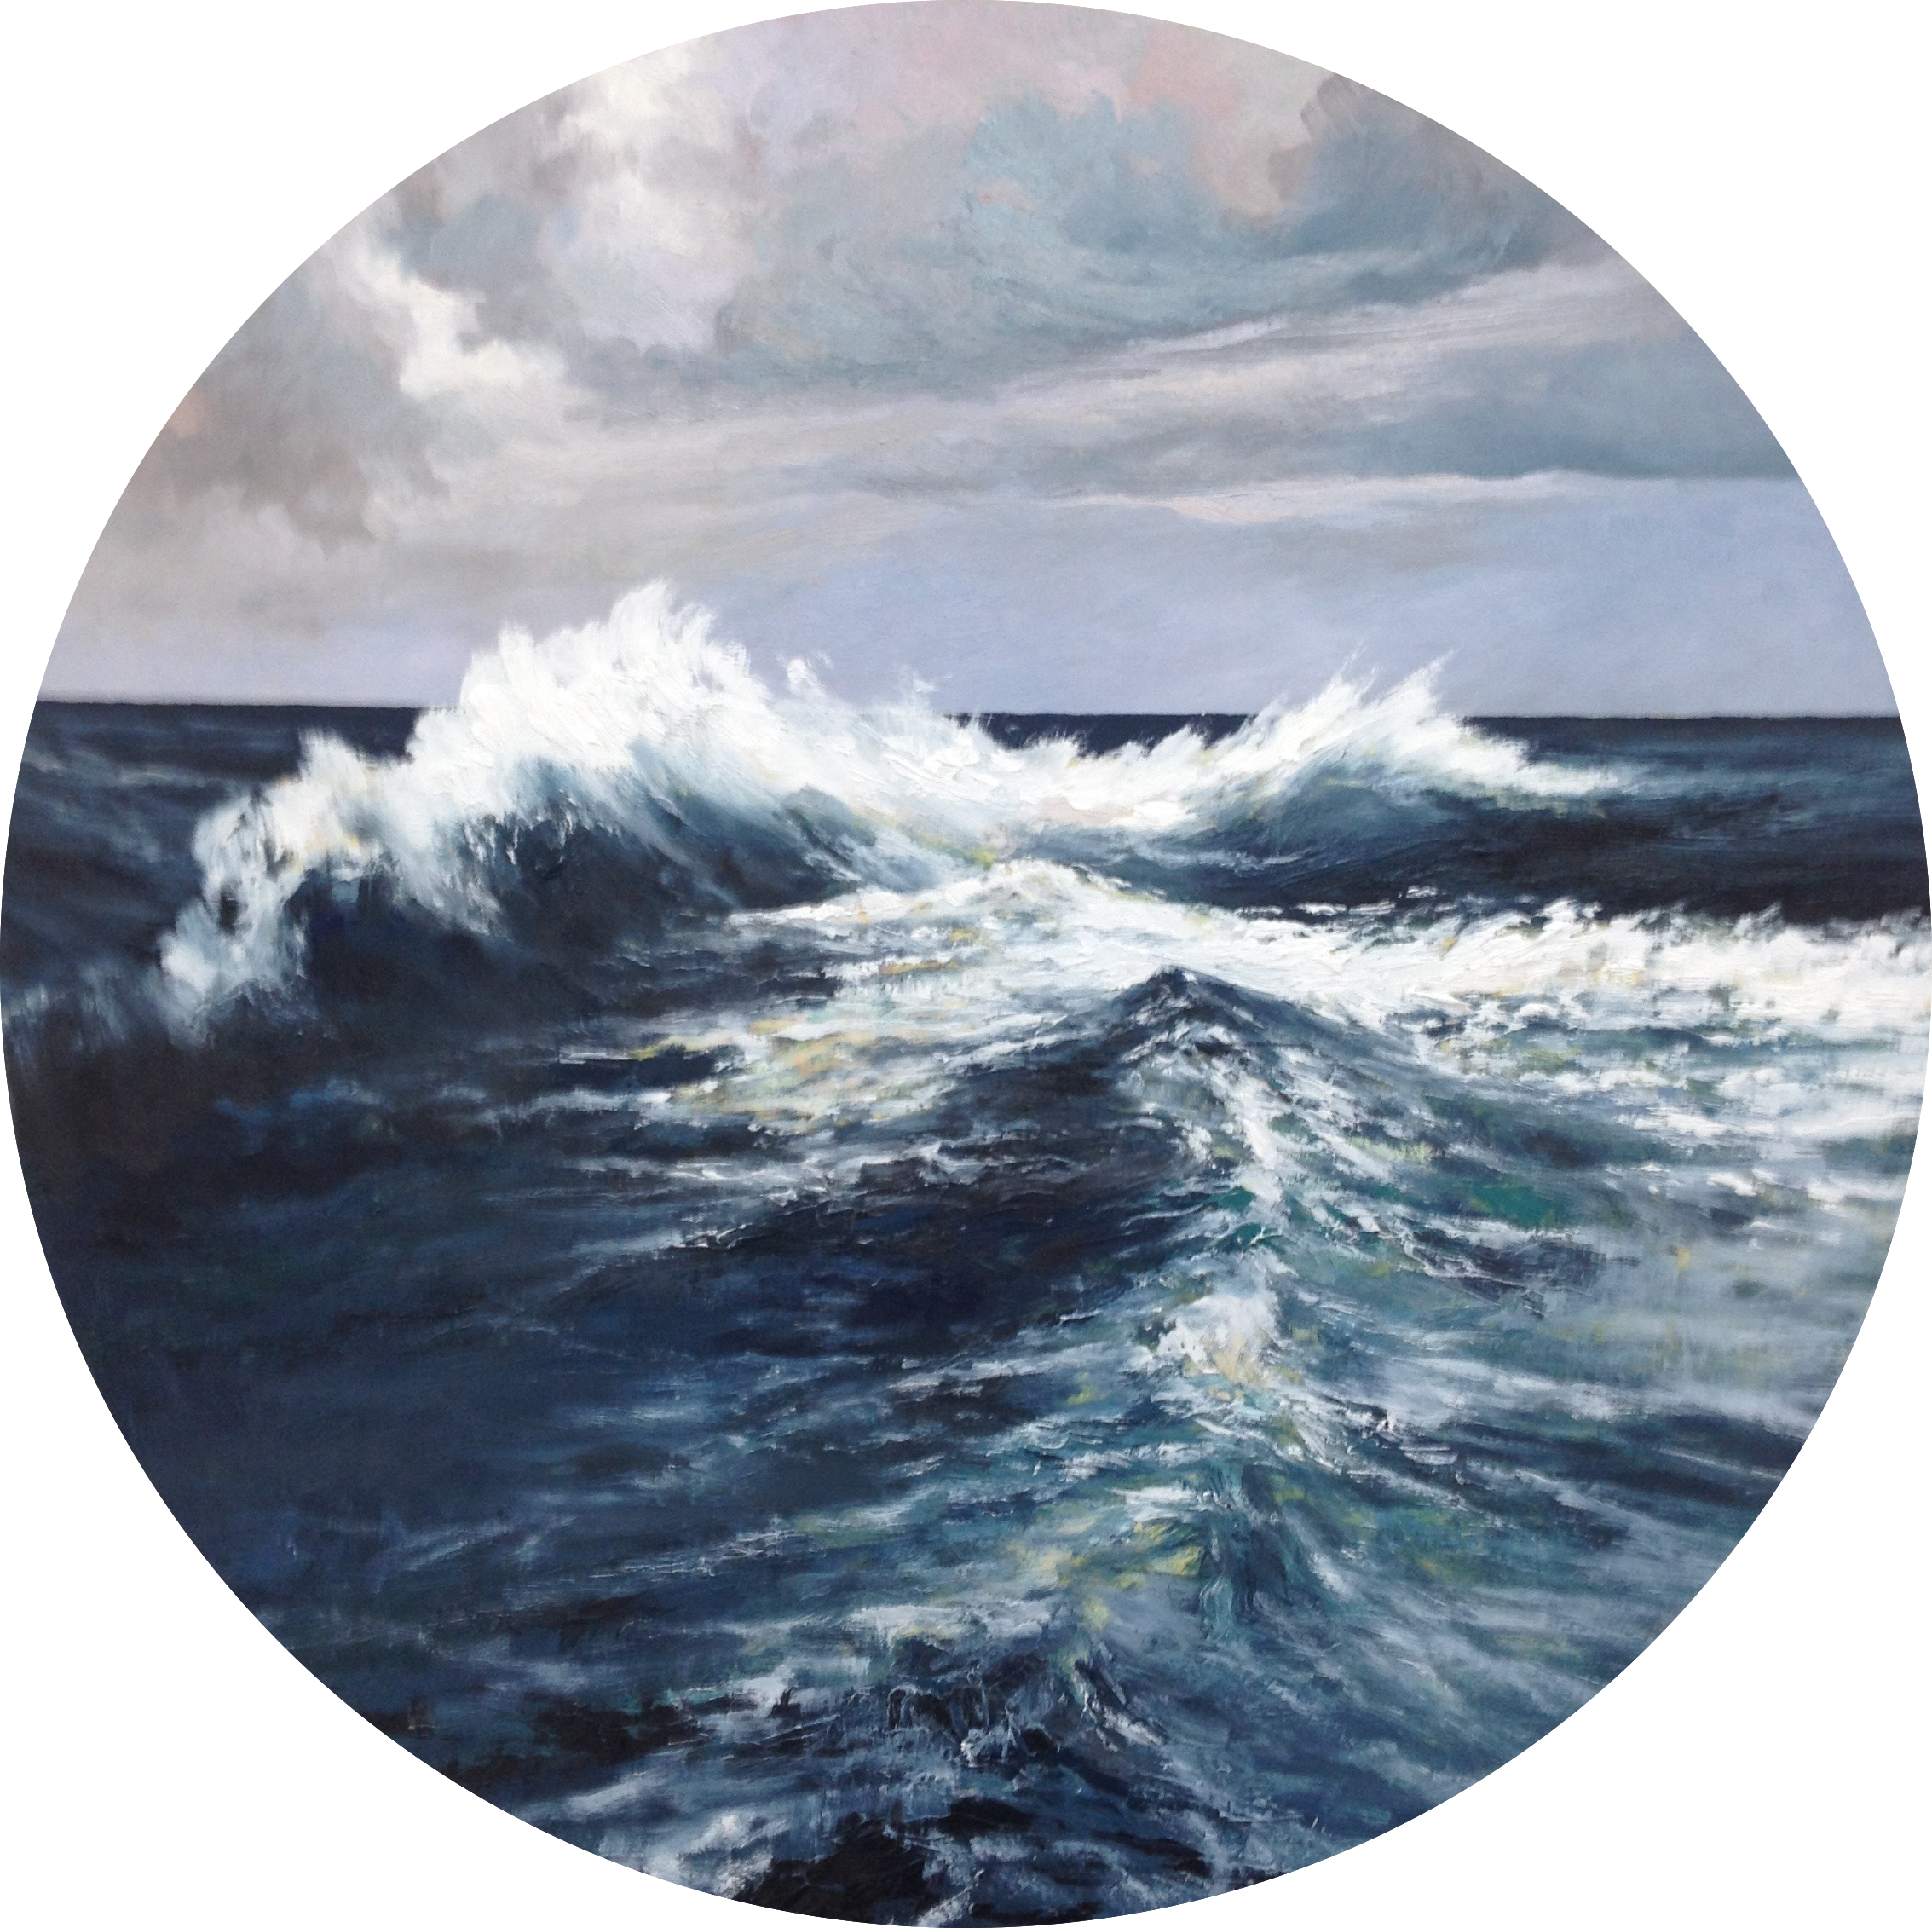 A recent painting, made to accompany Ravel's beautiful piece 'Jeux d'eau'. I haven't titled it yet, it is 60cm diameter, oil on beech, $650. Please contact me if you'd like to see it 'in the flesh'.